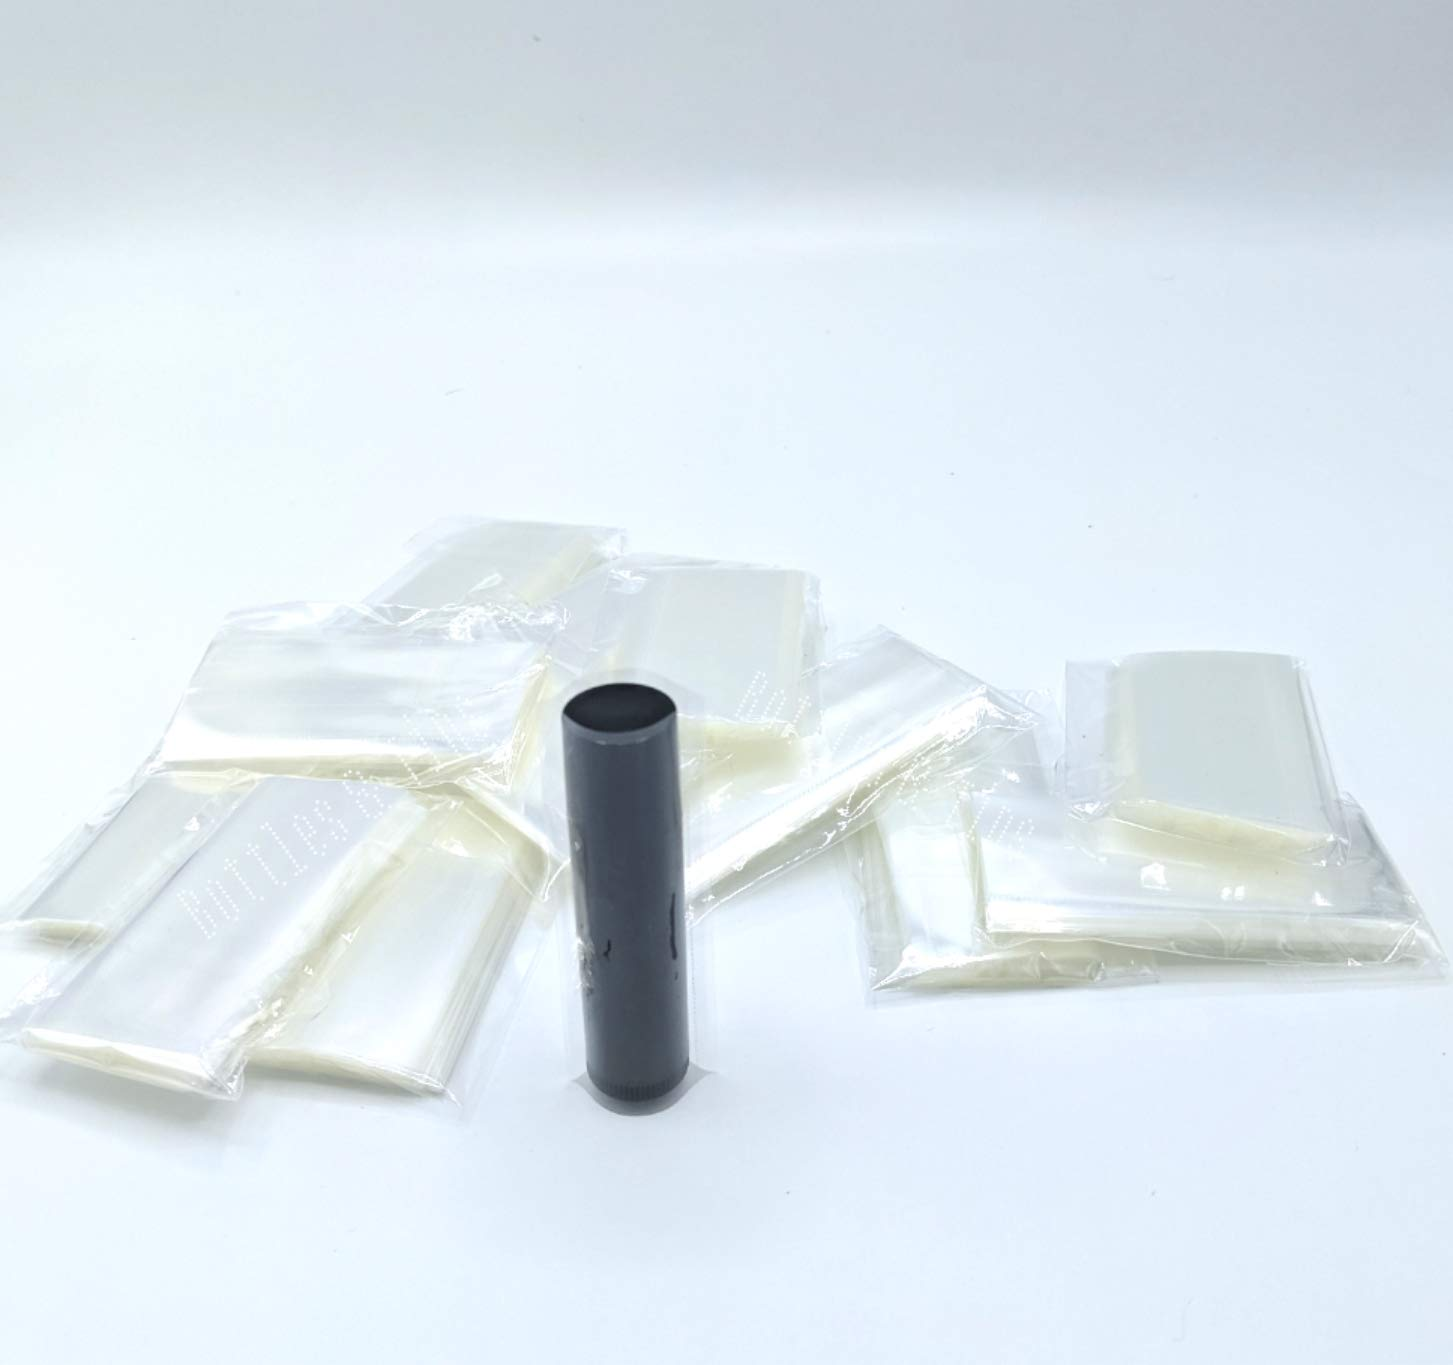 Tamper Evident Safety Seal Chapstick 50 Clear Shrink Wrap Bands Sleeves for Lip Balm Tubes